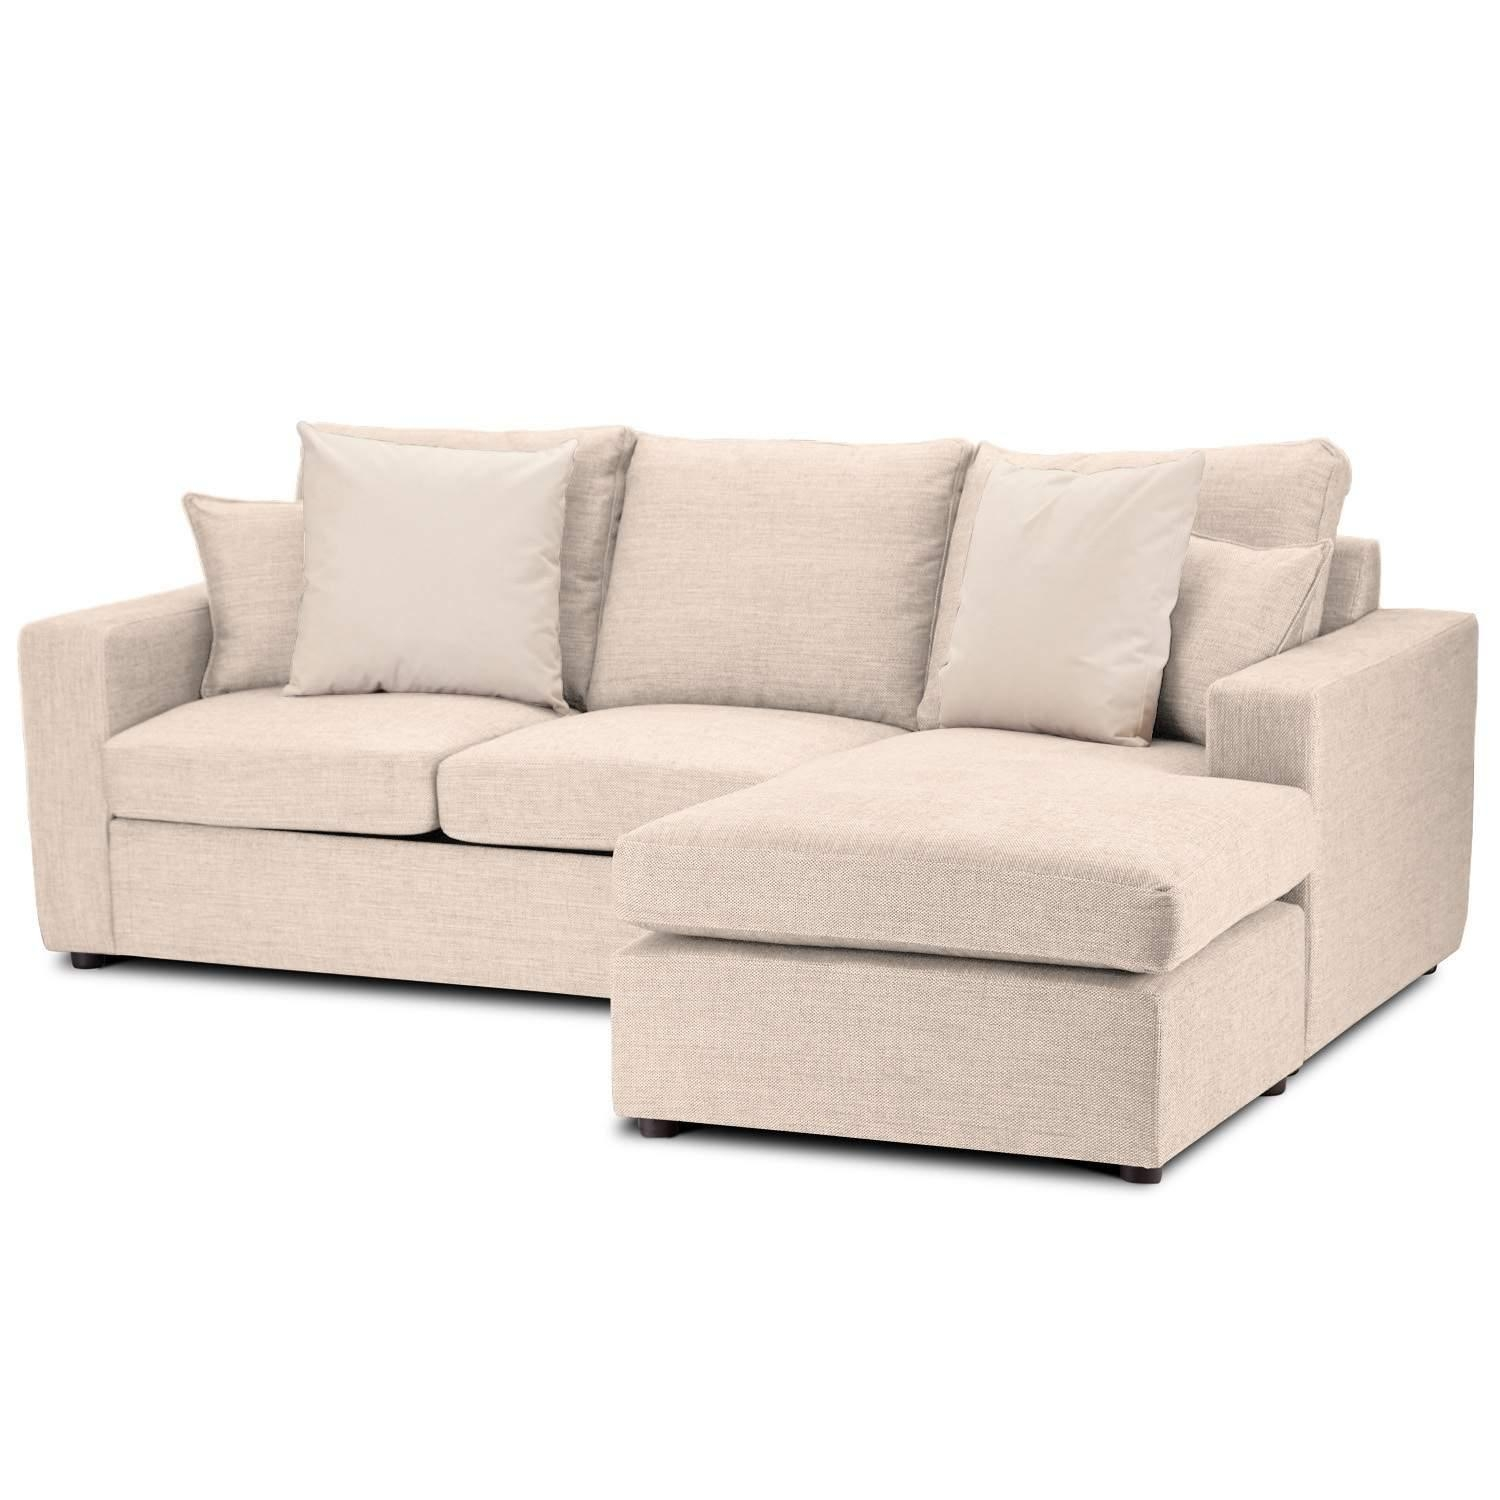 20 best ideas sears sofa sofa ideas for Wrap around sofa bed